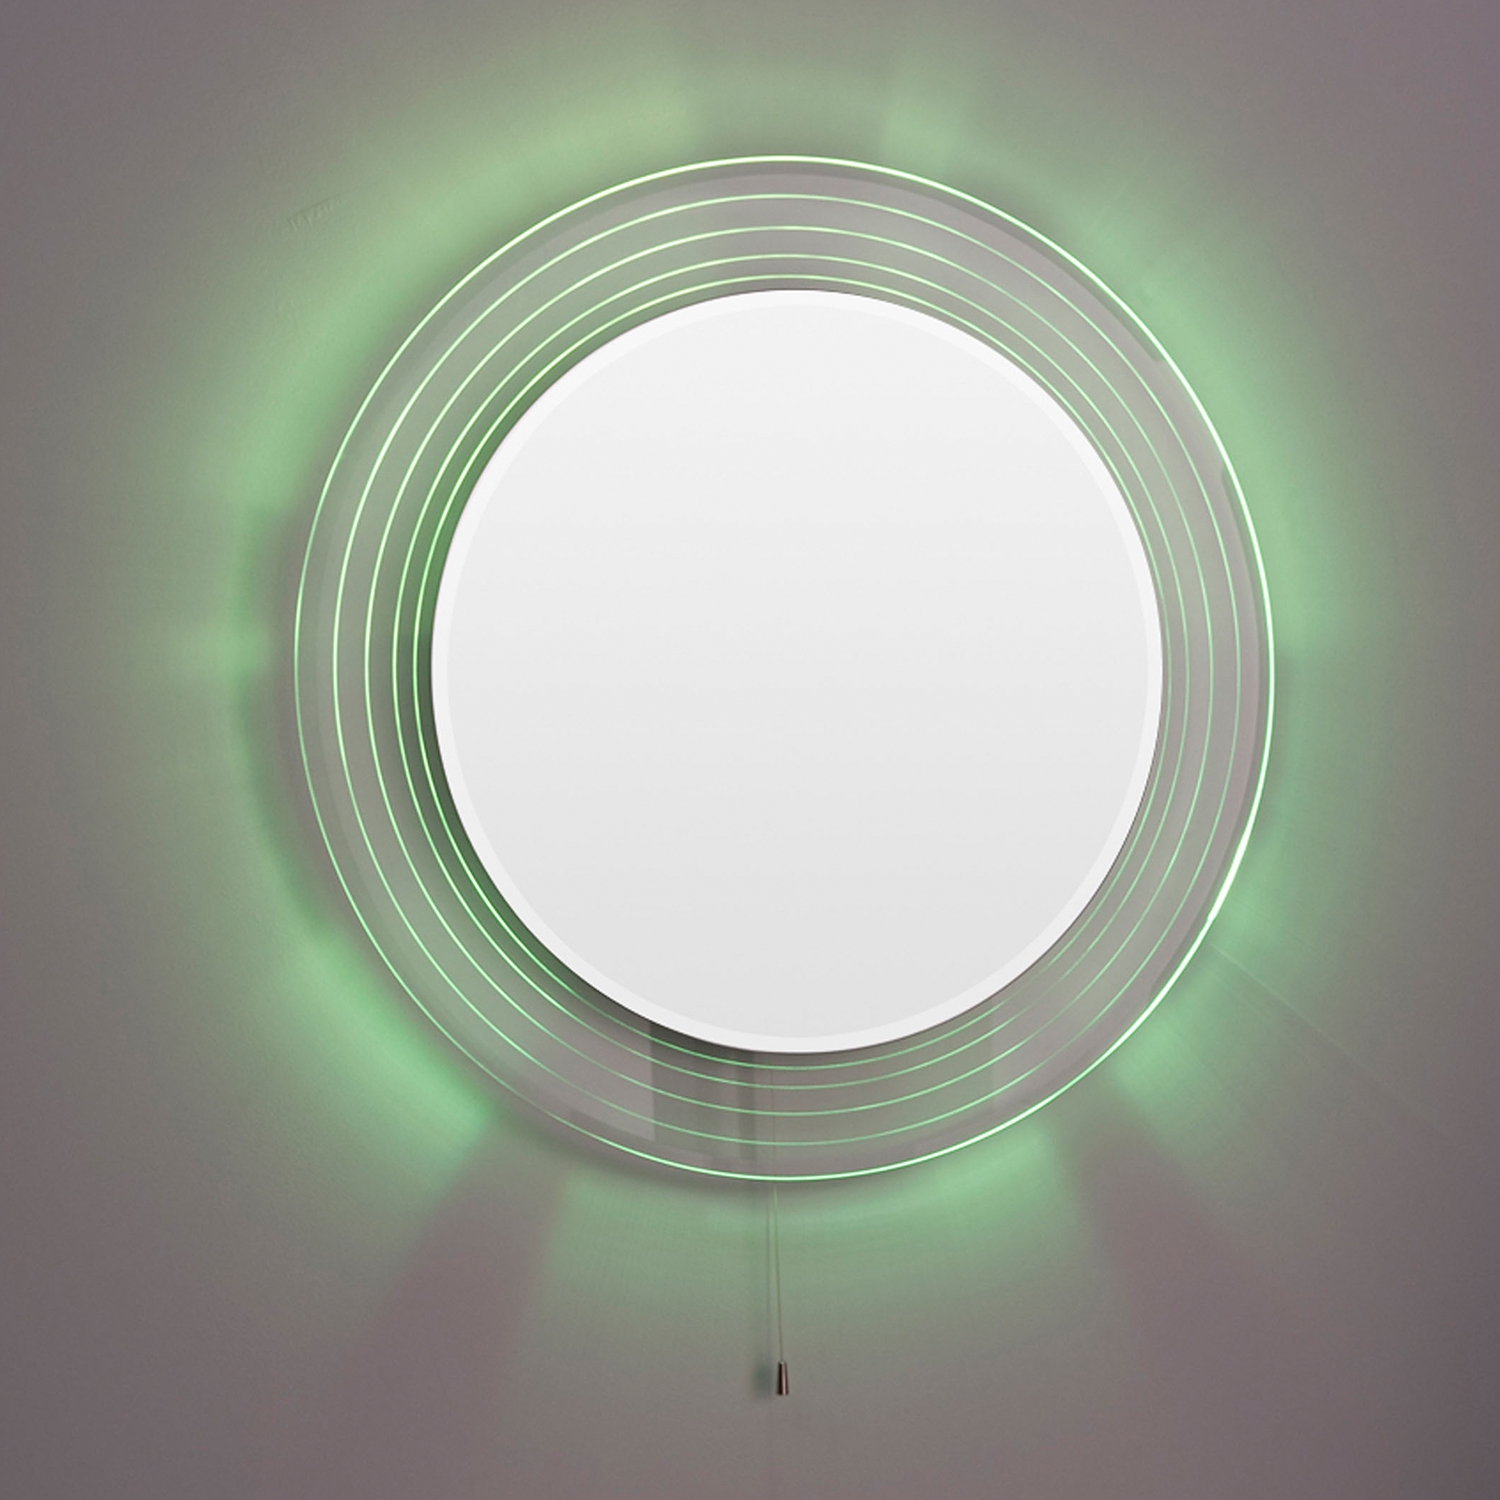 Premier Orpheus Colour Changing Bathroom Mirror, 600mm Diameter, Stainless Steel-0